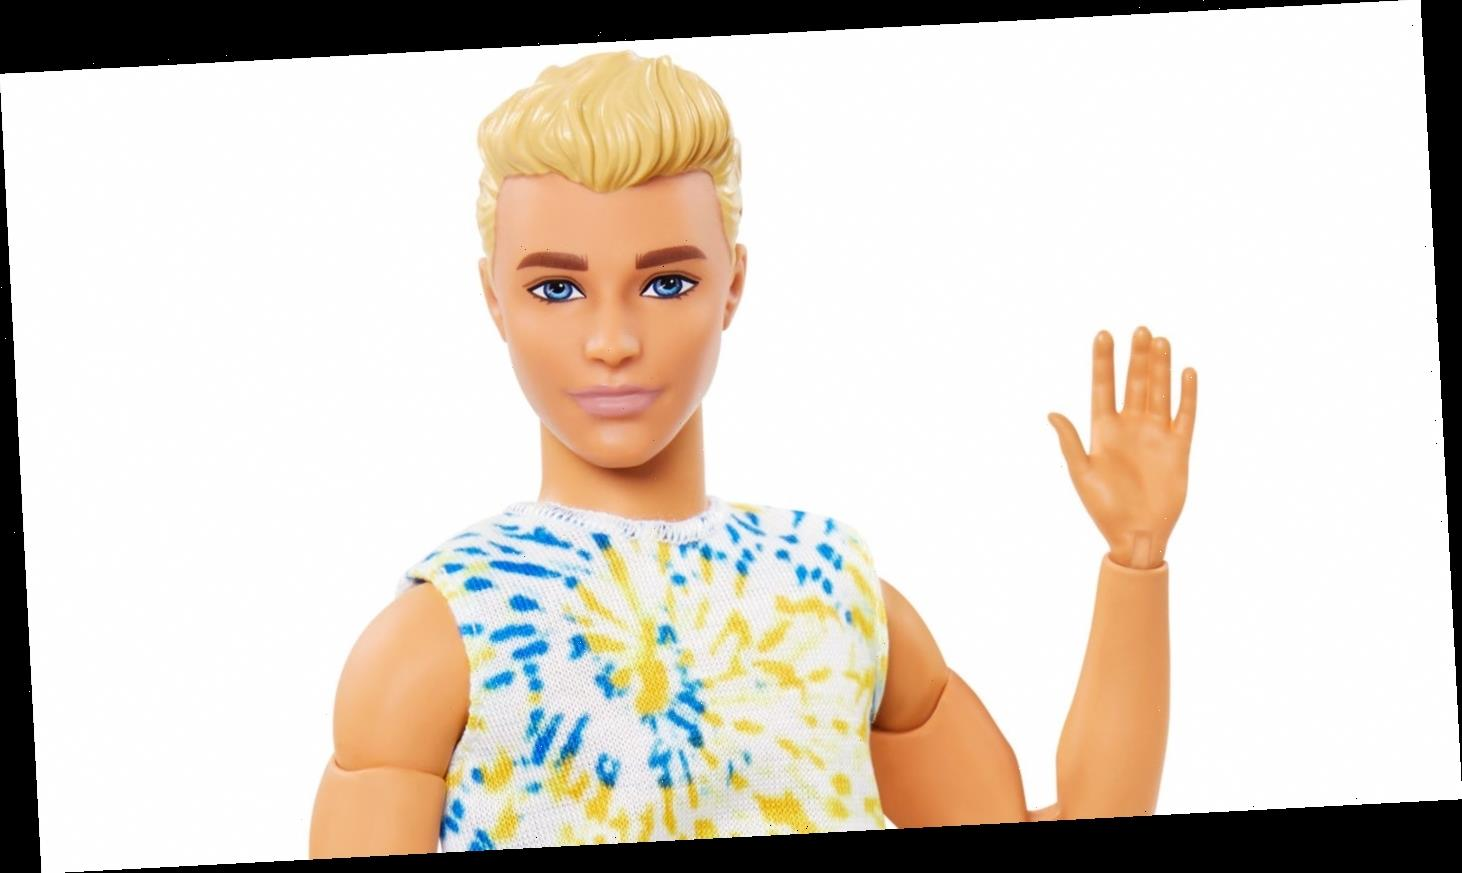 At 60, Barbie's Ken is more diverse than ever but still 'continuing to evolve and grow'